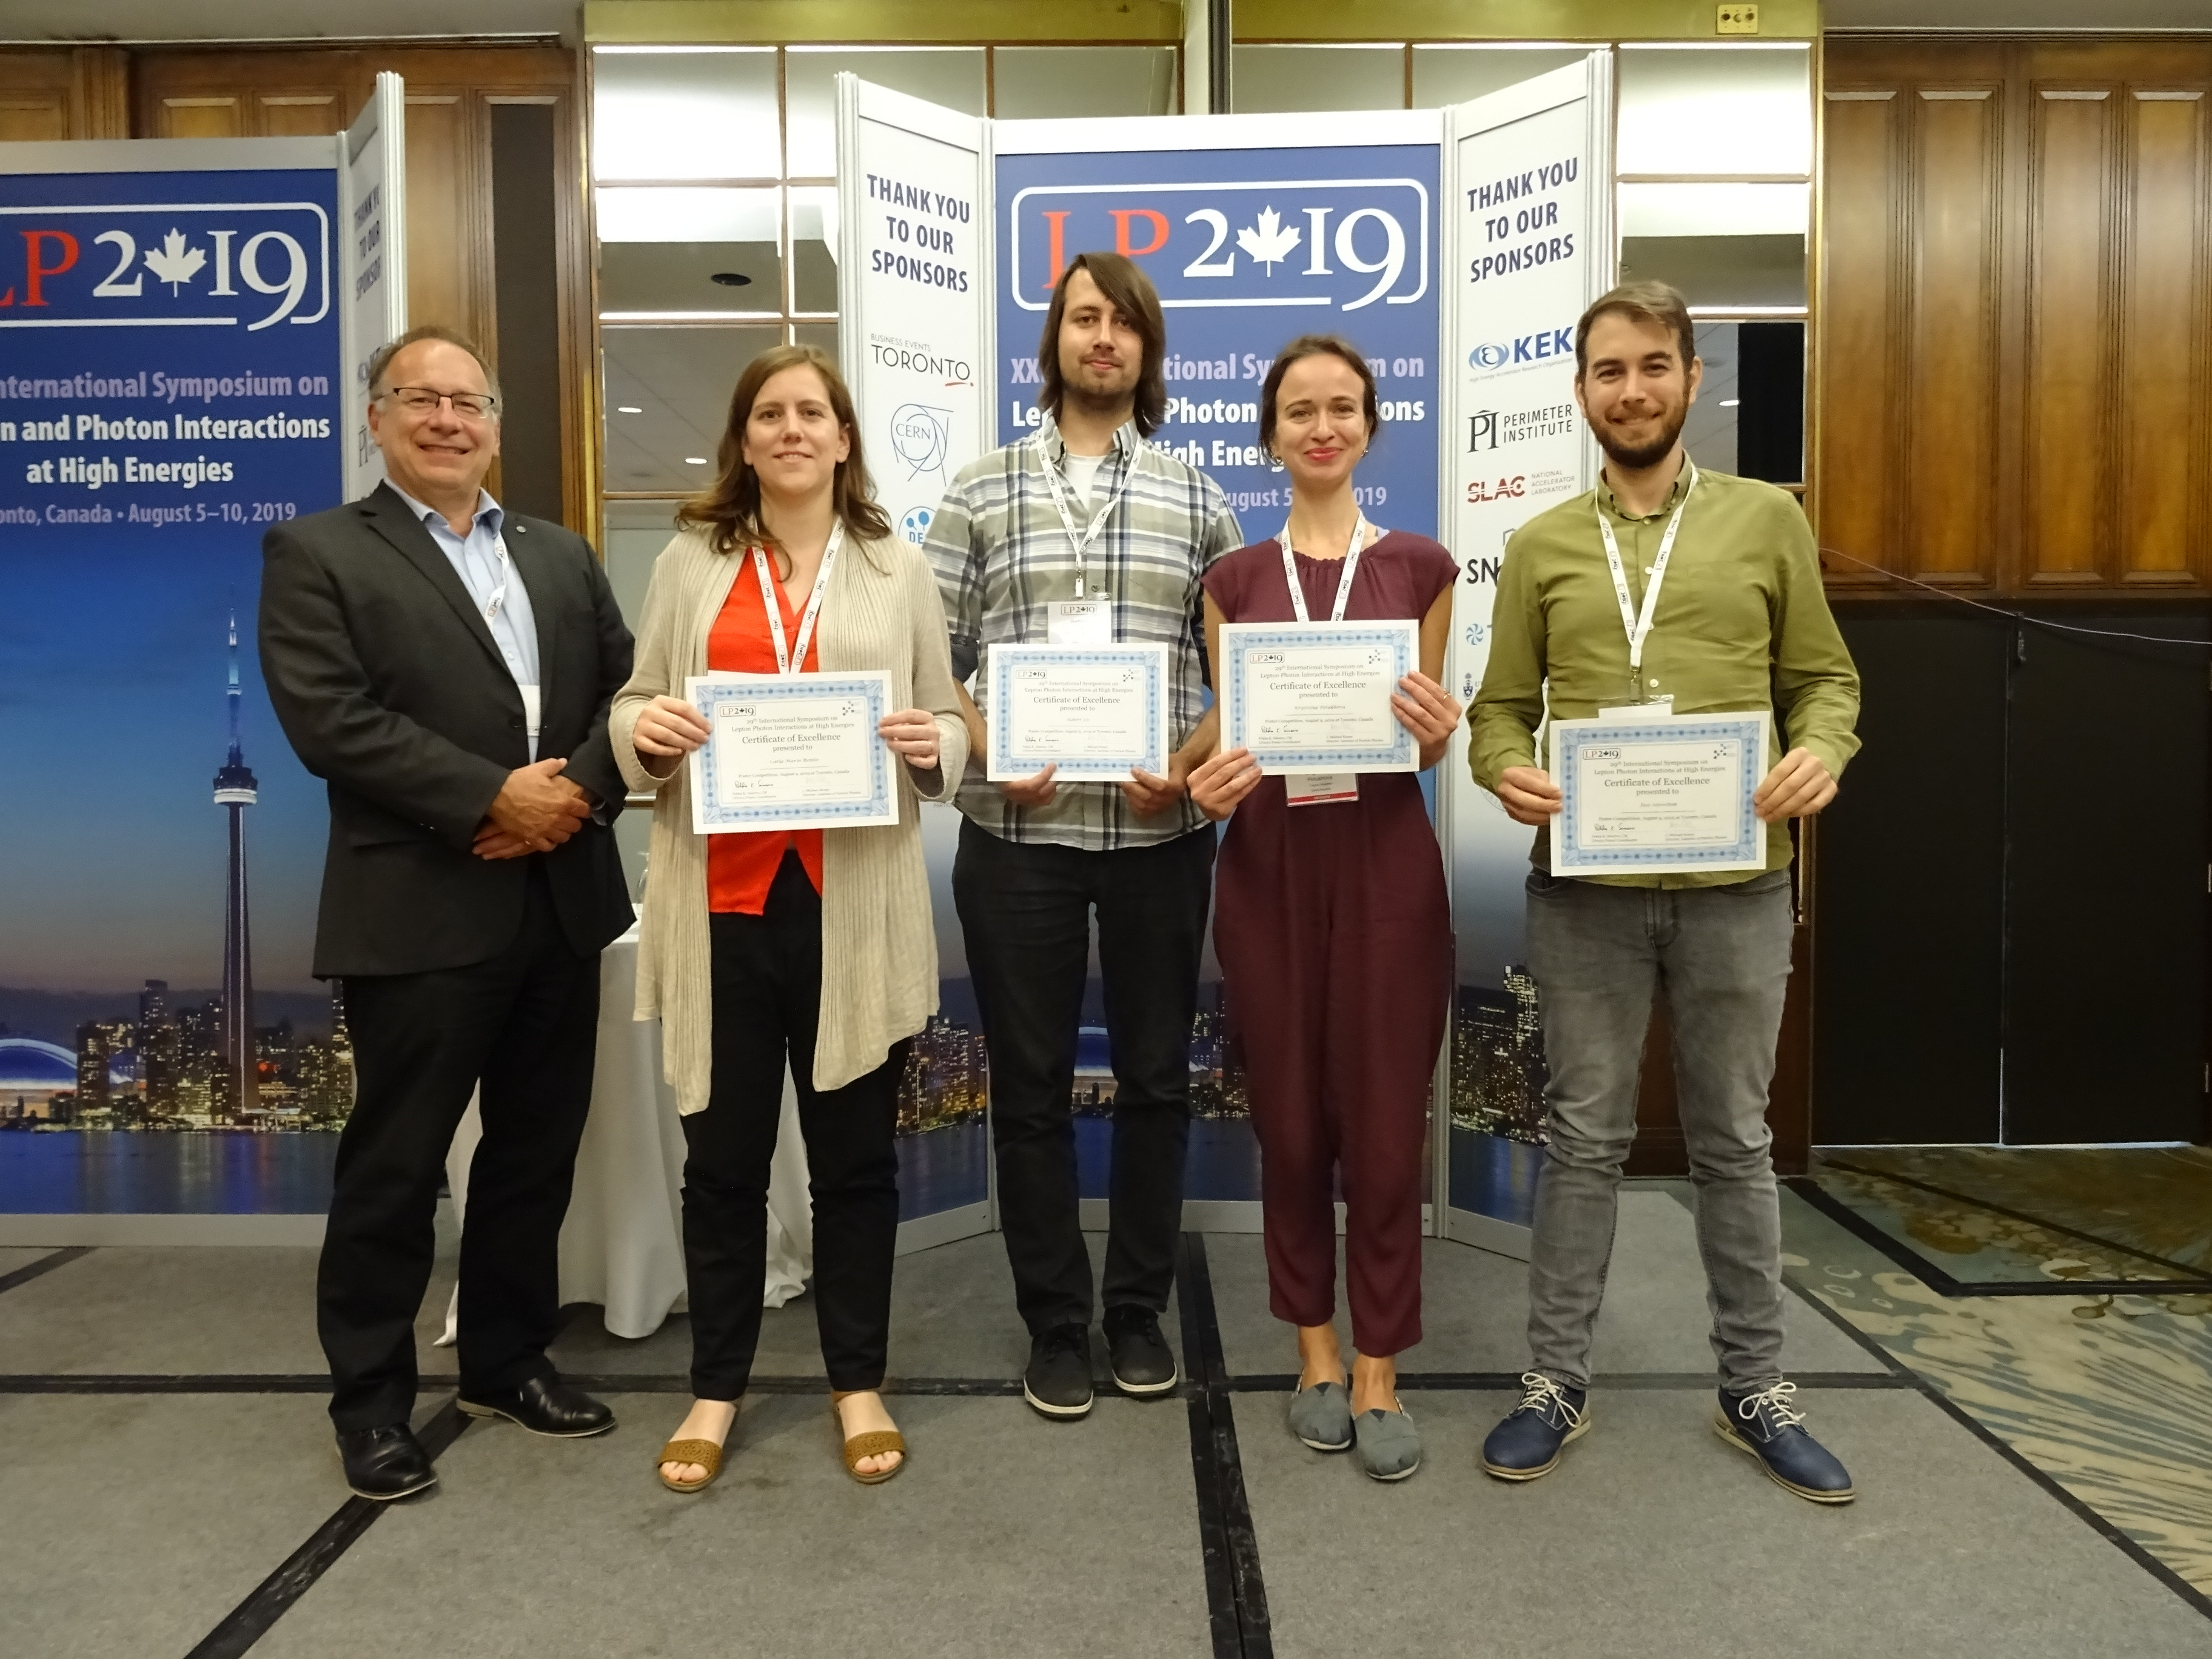 The winners of the Lepton Photon Poster Competition from left-to-right:  Prof. Michael Roney, Director of the Institute for Particle Physics; Dr. Carla Marin Benito, Mr. Robert Les, Ms. Krystsina Petukhova and Mr. Jose Soto-Oton.